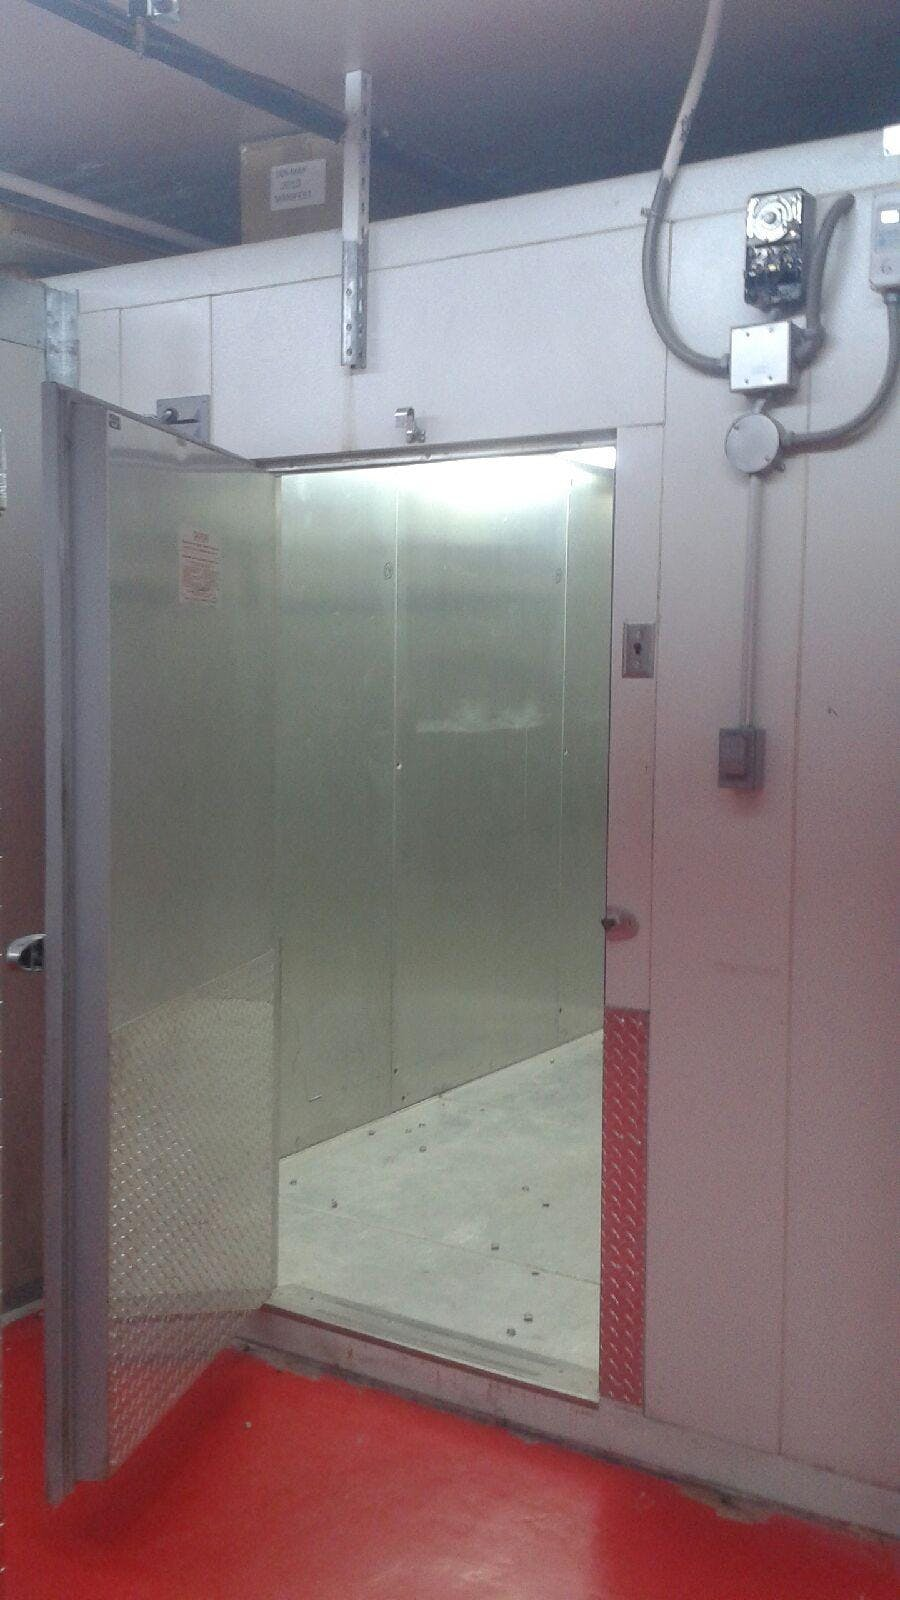 Combo freezer, walk in freezer, reach in freezer Walk in freezer sold by Northcold Restaurant Equipment